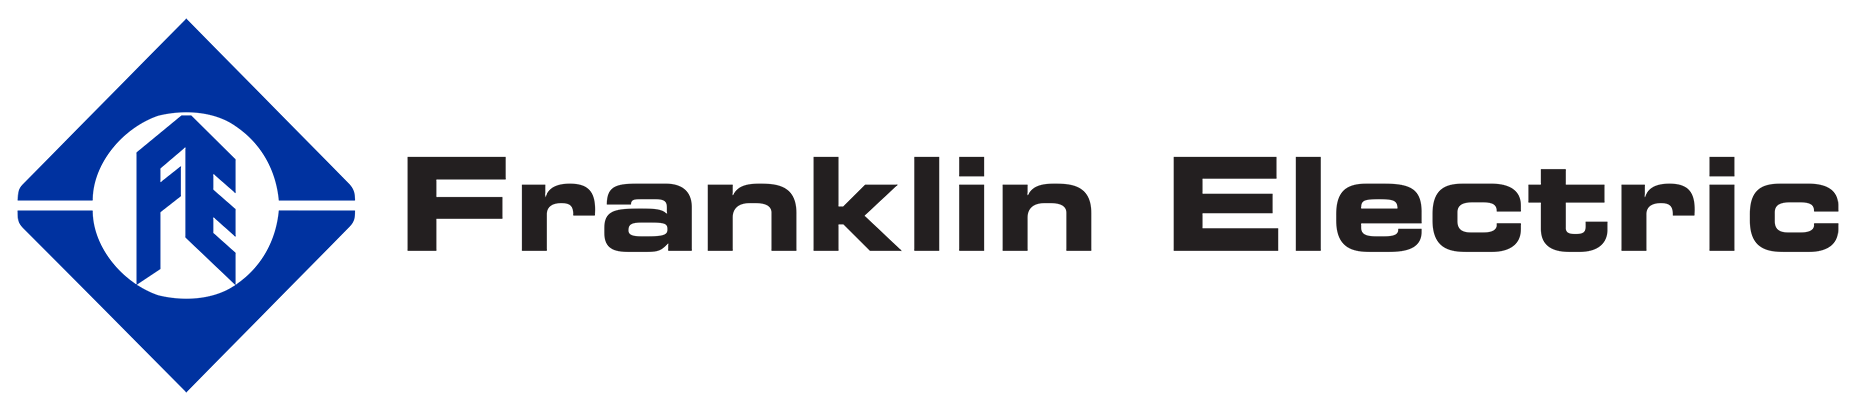 Franklin Electric | Noticias del Mercado